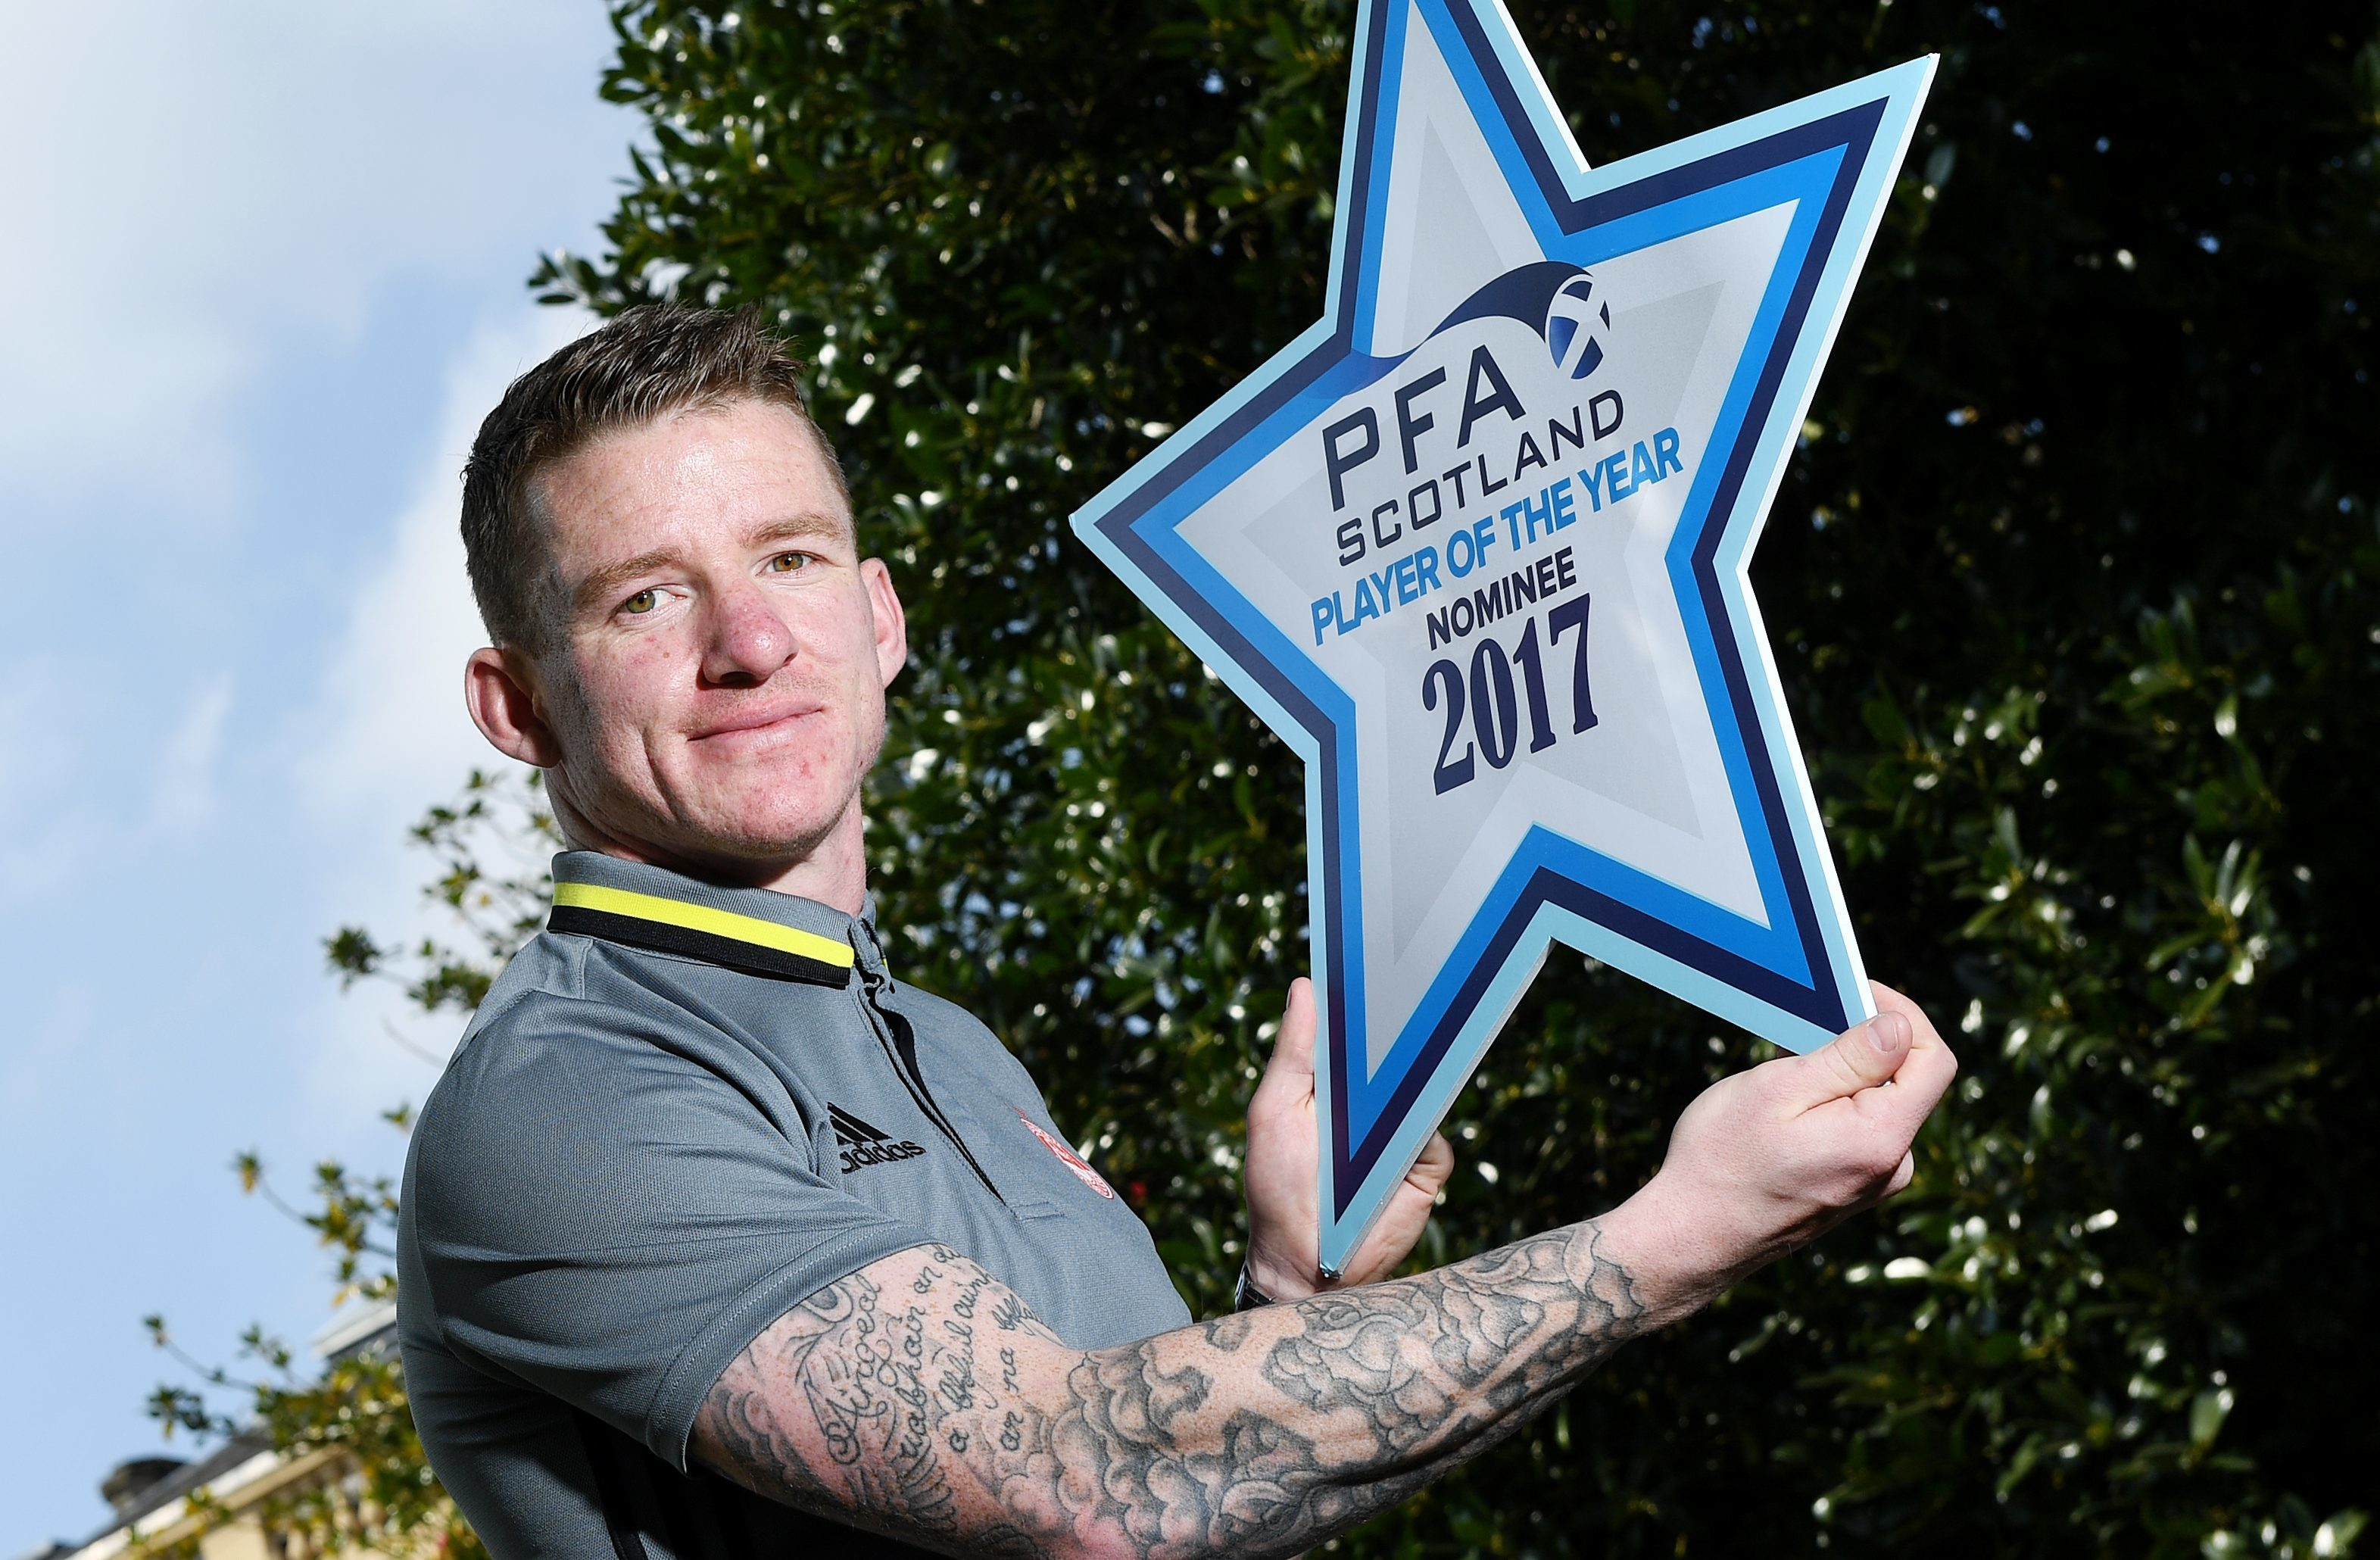 PFA Scotland Premiership Player of the Year Nominee Jonny Hayes (SNS Group)